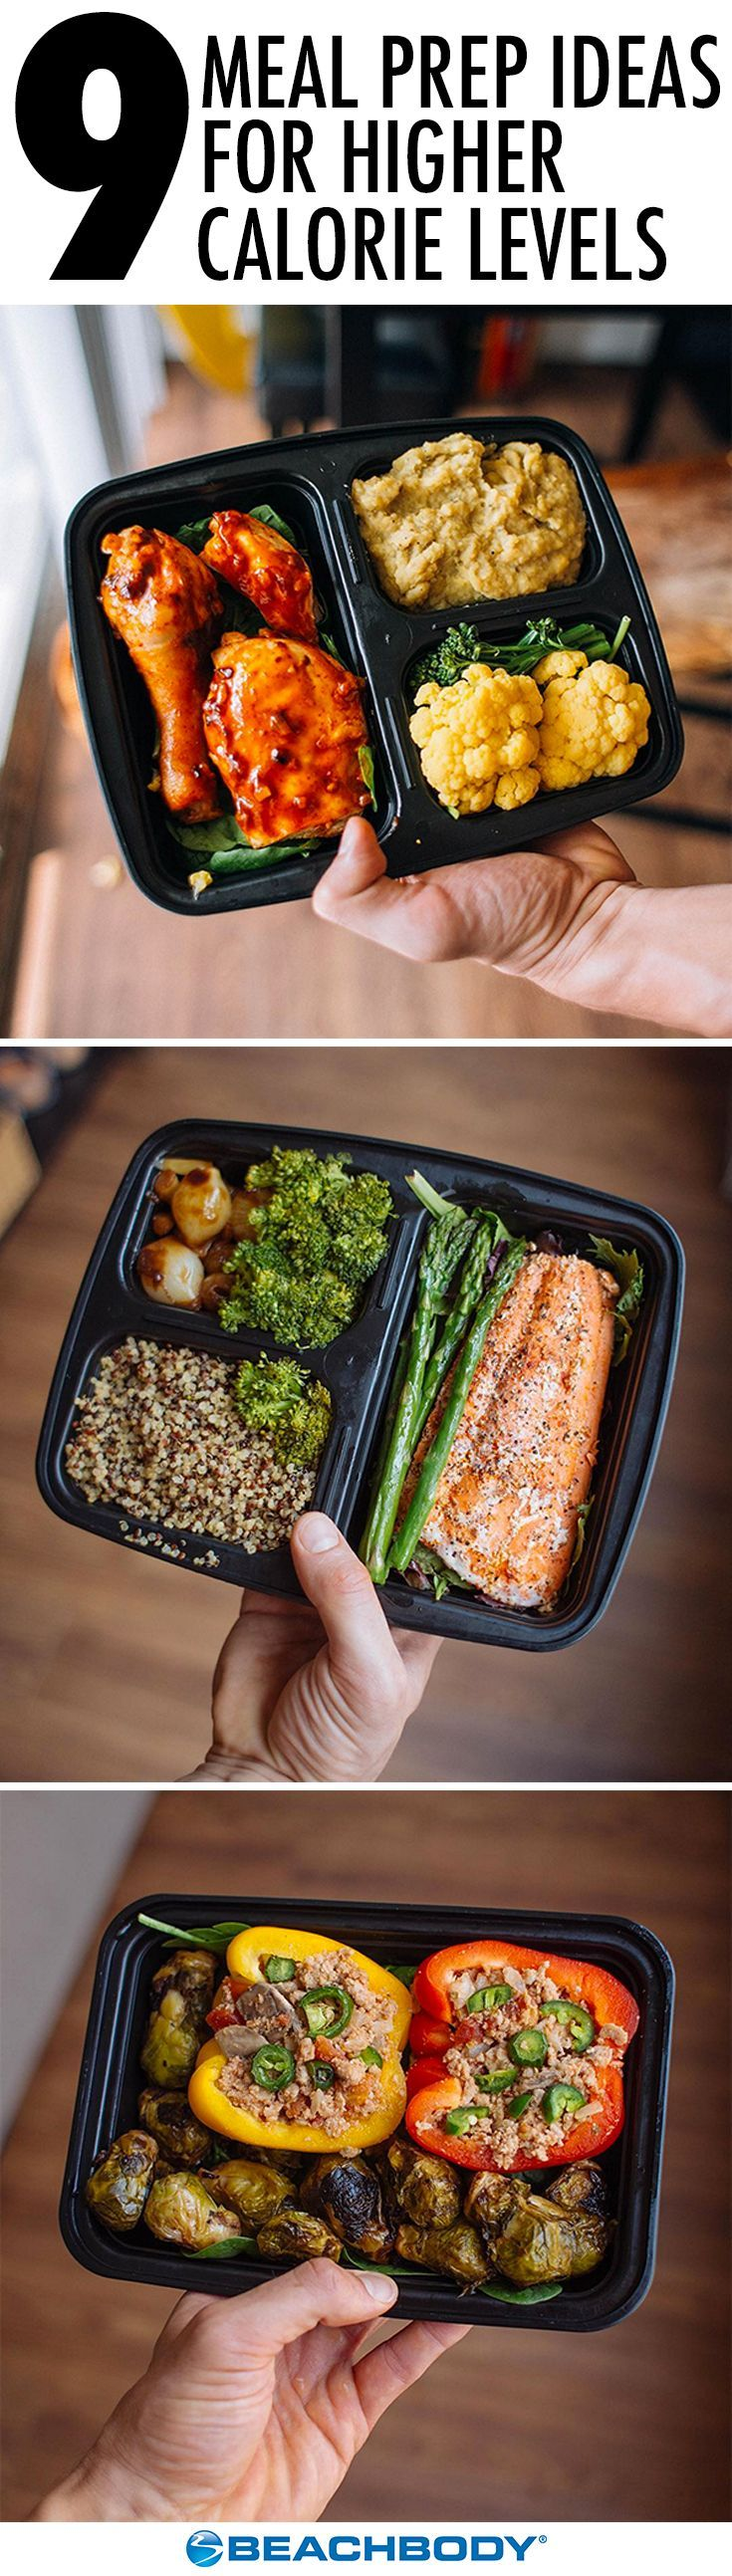 When you're trying to pack on muscle, you have to fuel your body with lots of high-quality food. Meal prepping can help you hit your calorie requirements with healthy food that's also delicious. Here are nine tasty meals for you to try! // meal prep // meal prep ideas // meal planning // high calorie level // body building // Beachbody // BeachbodyBlog.com